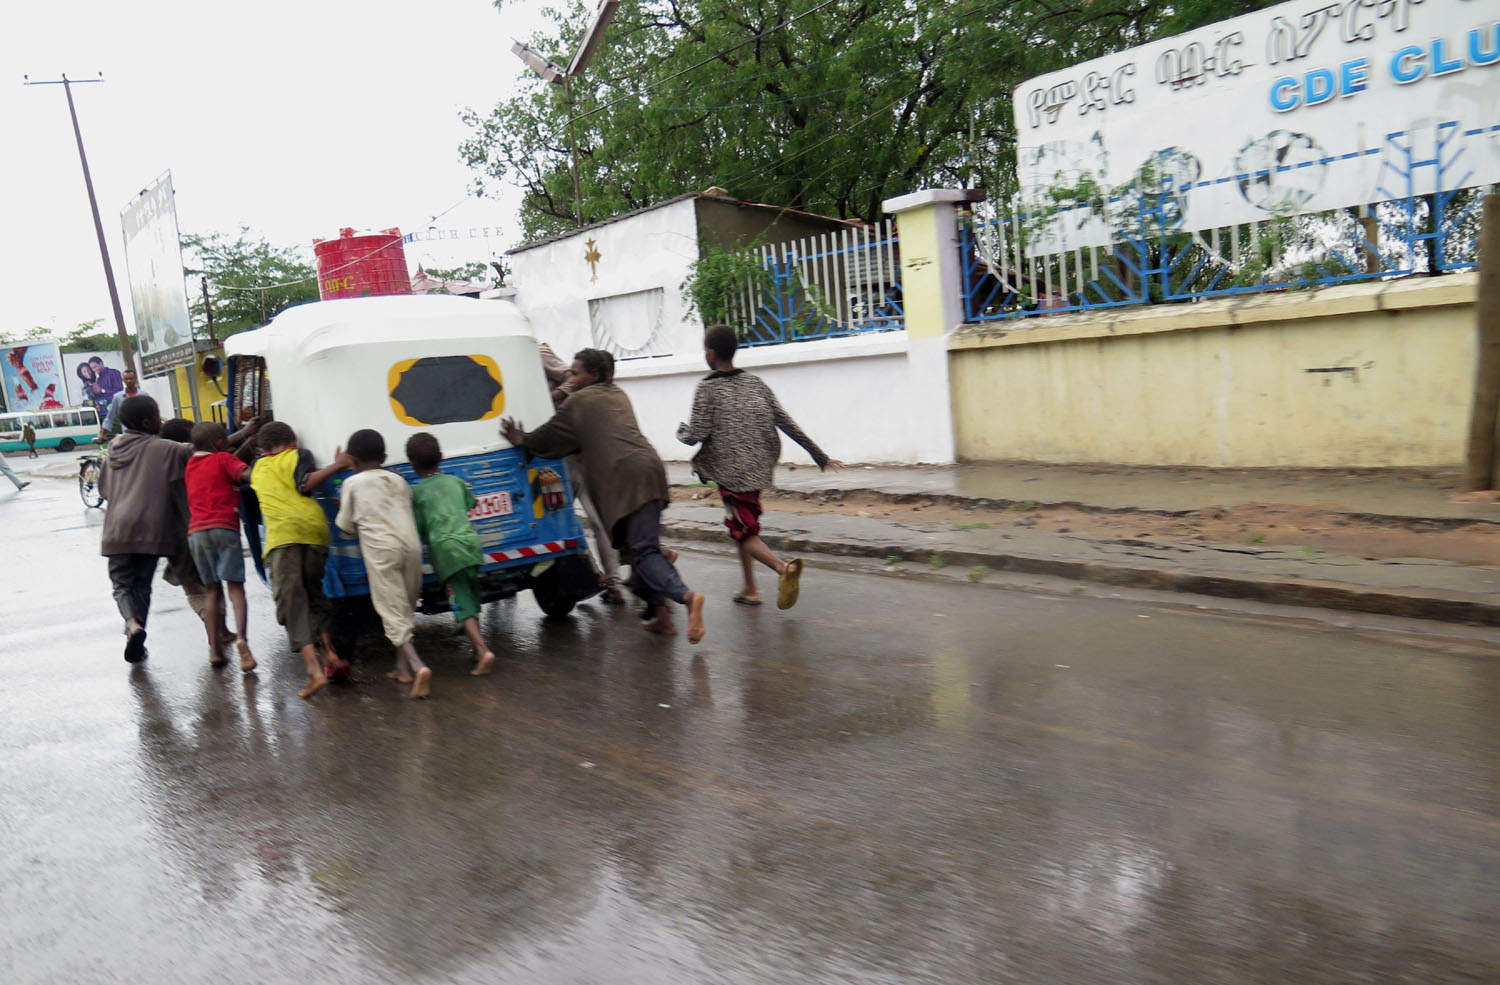 Ethiopia-Harar-Getting-There-Dire-Dawa-Helping-Hands